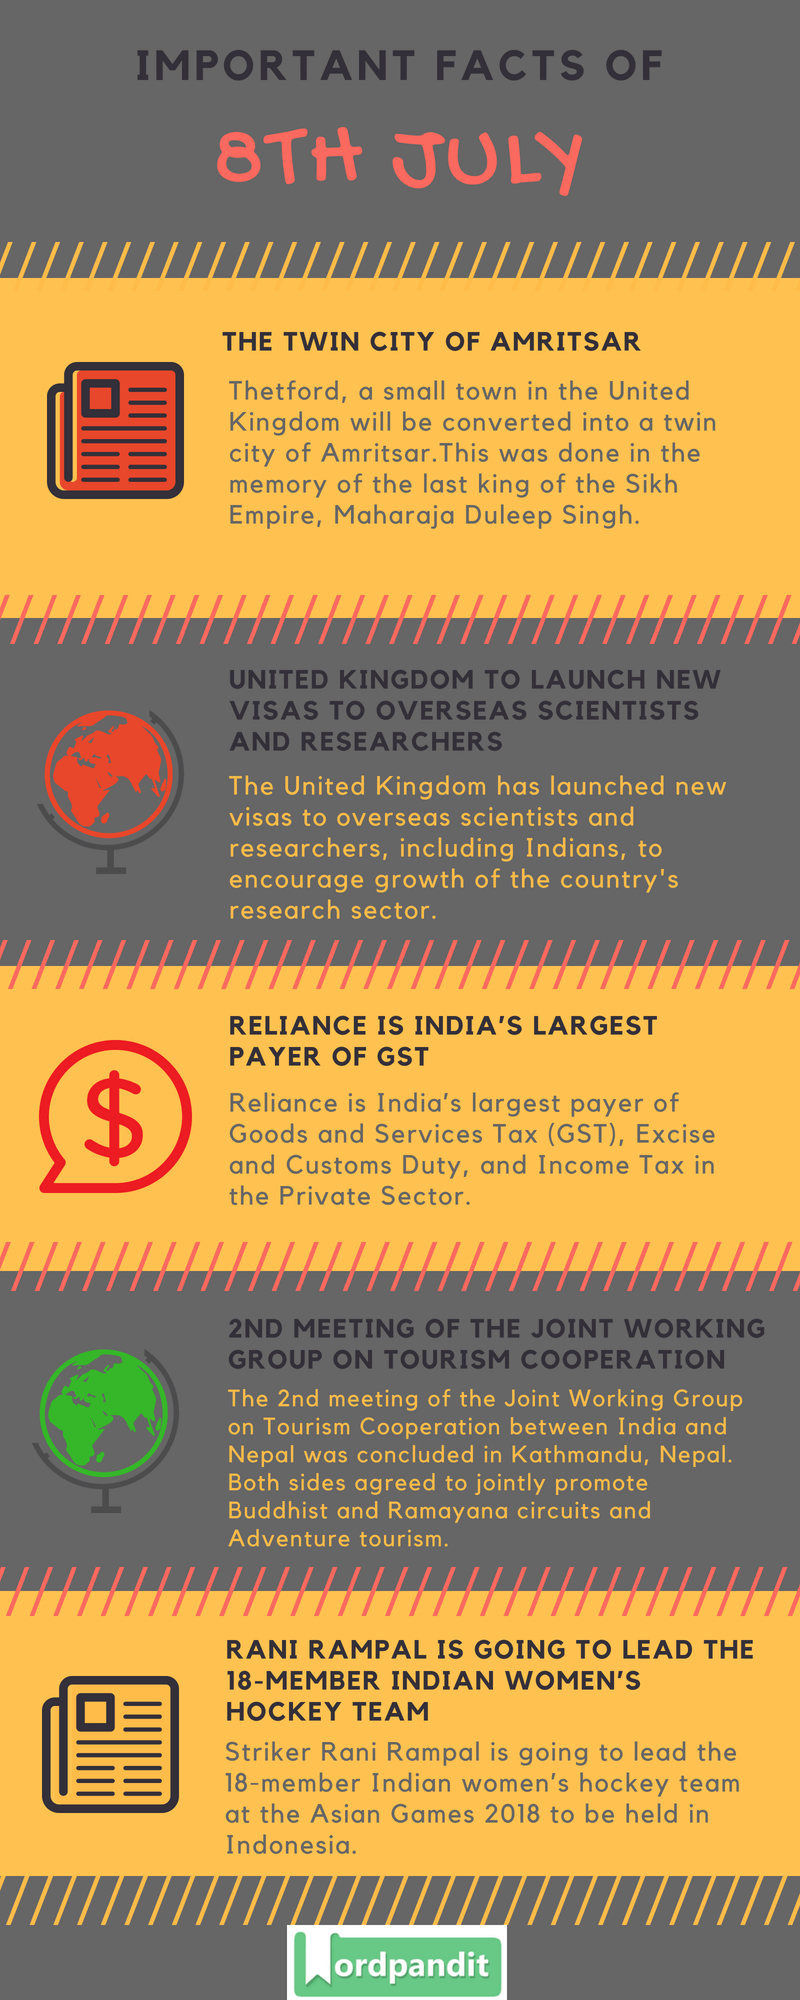 Daily Current Affairs 8 July 2018 Current Affairs Quiz July 8 2018 Current Affairs Infographic